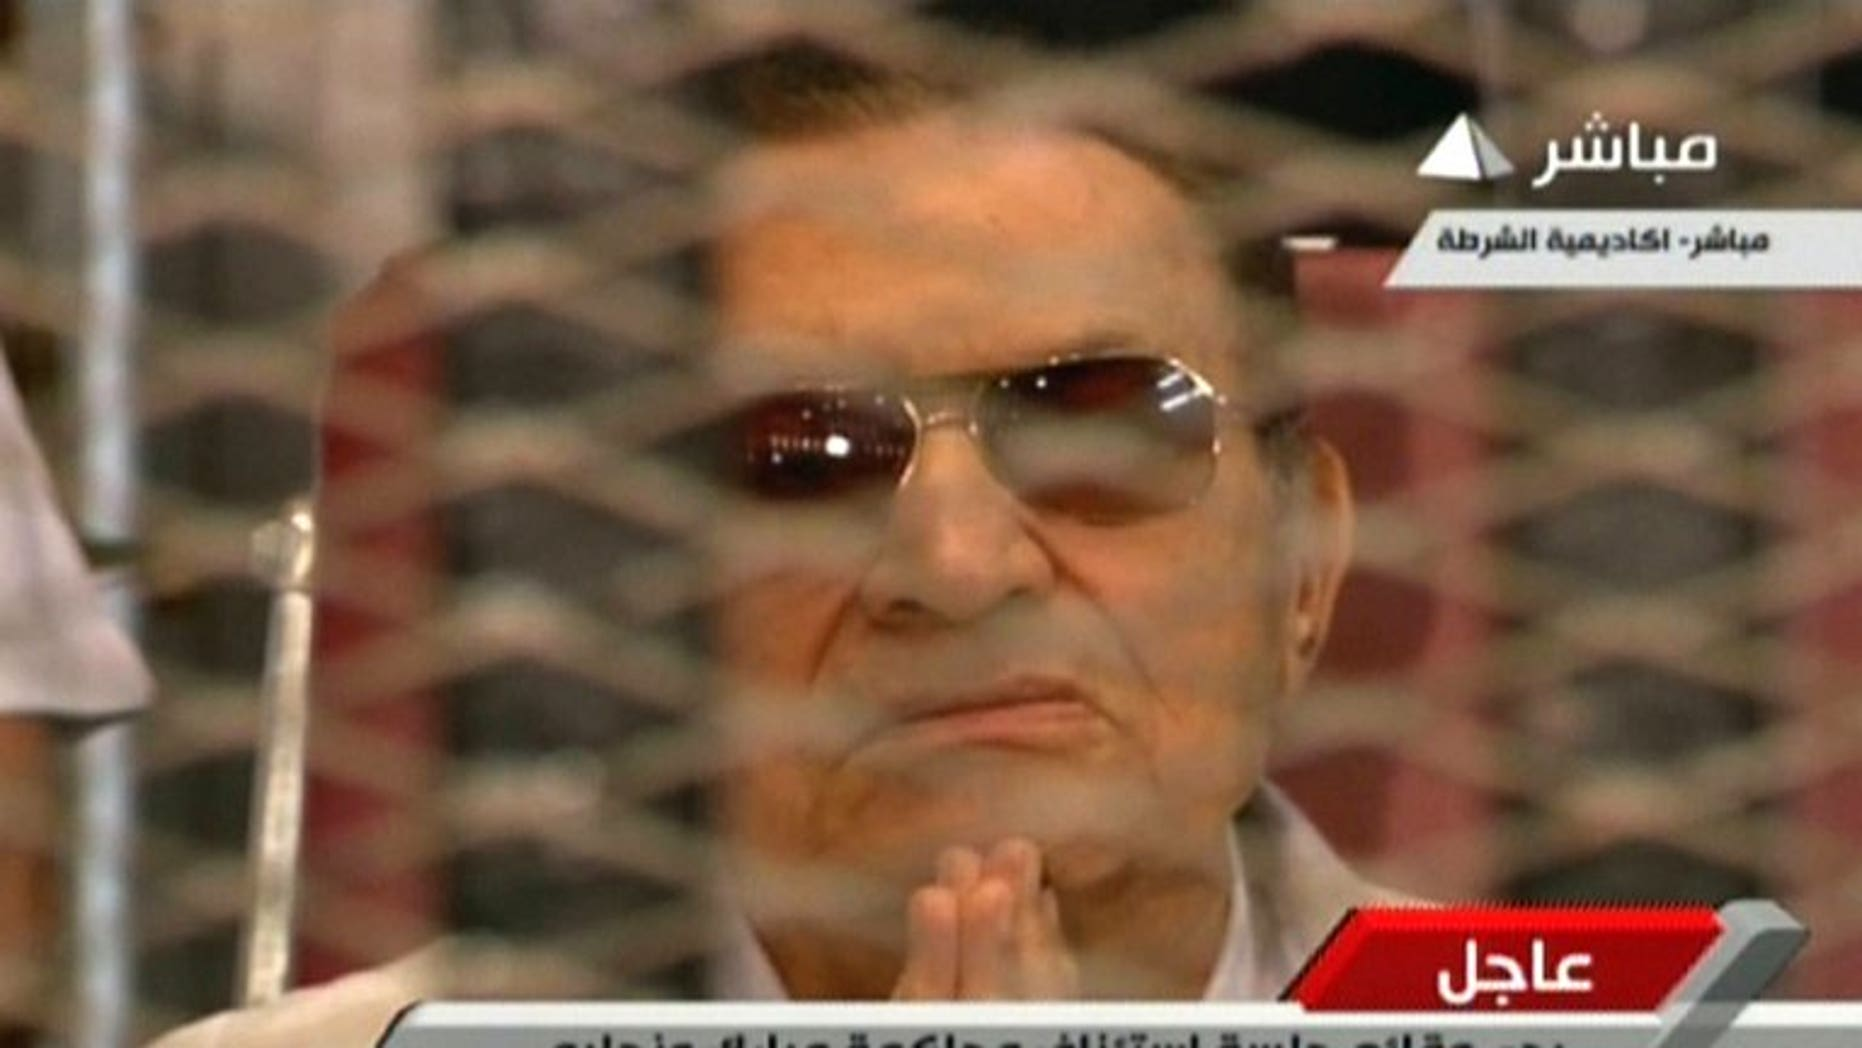 An image grab taken from Egyptian state TV shows ousted Egyptian president Hosni Mubarak gesturing behind bars during a hearing in his retrial at the police academy in Cairo on July 6, 2013. The trial of former Egyptian president Hosni Mubarak on charges of complicity in the deaths of protesters was adjourned on Saturday until August 25, after a brief session.